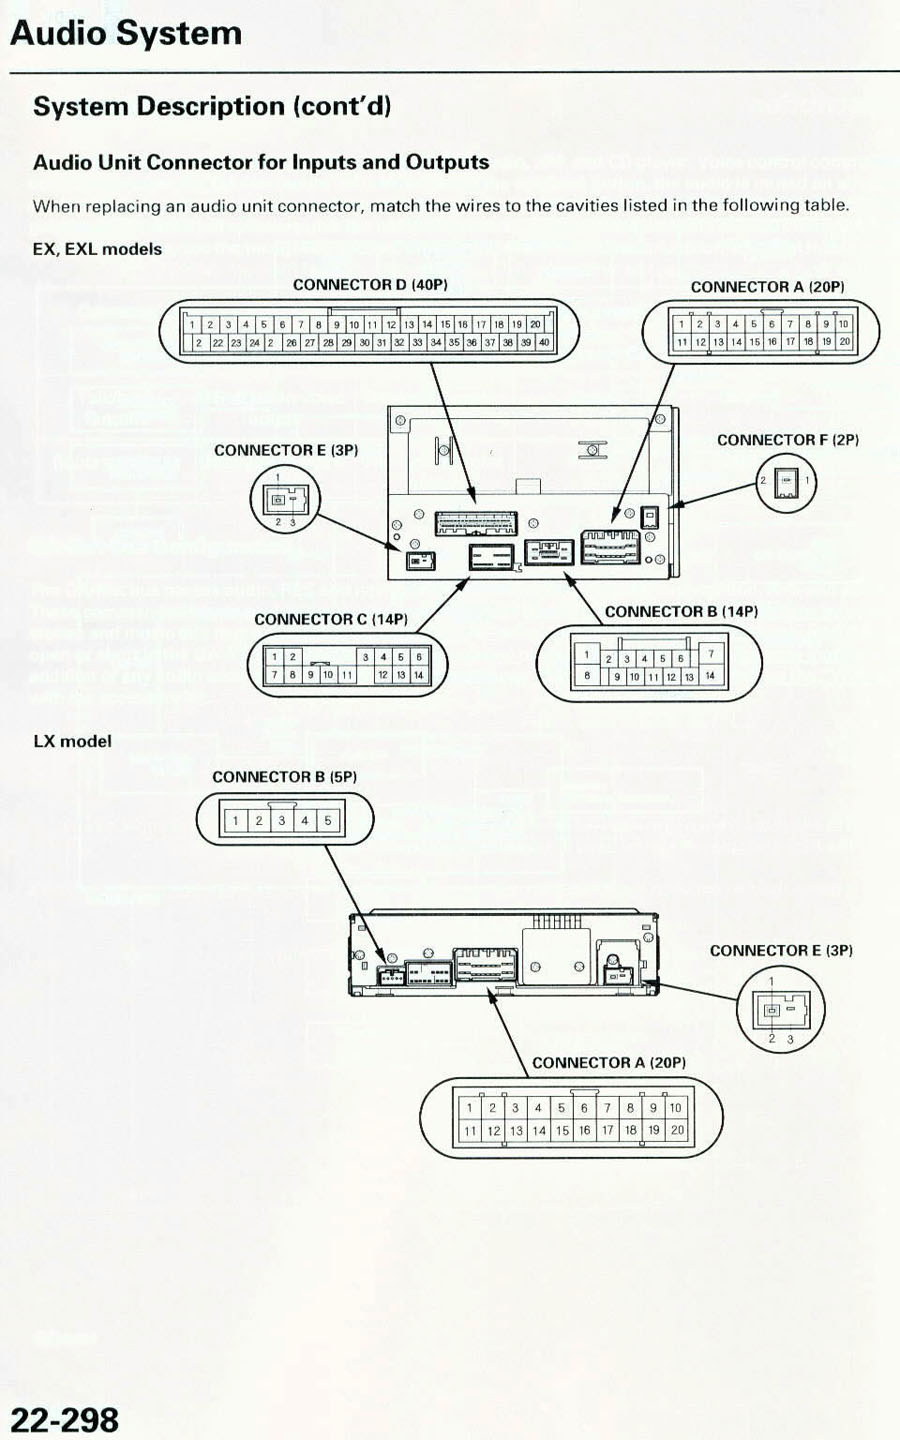 2012 Kia Sorento Radio Wiring Diagram Libraries Trailer Harness 07 Civic Diagrams Scematic2007 Honda Pilot Stereo Detailed